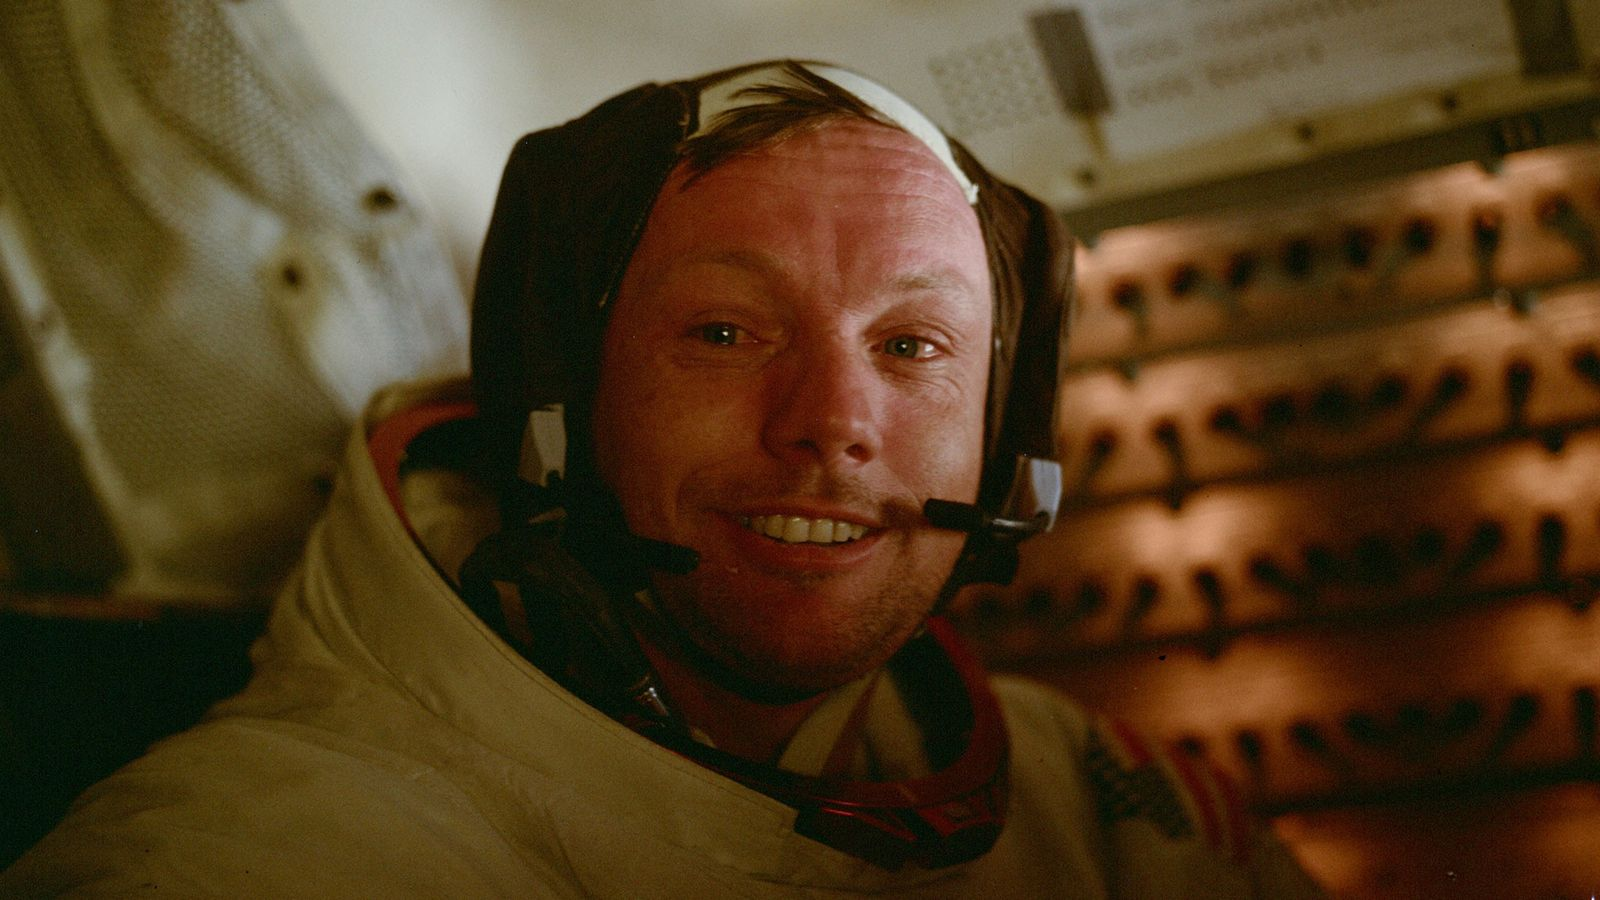 Apollo 11 astronaut Neil Armstrong in the lunar module shortly after taking the first steps on ...